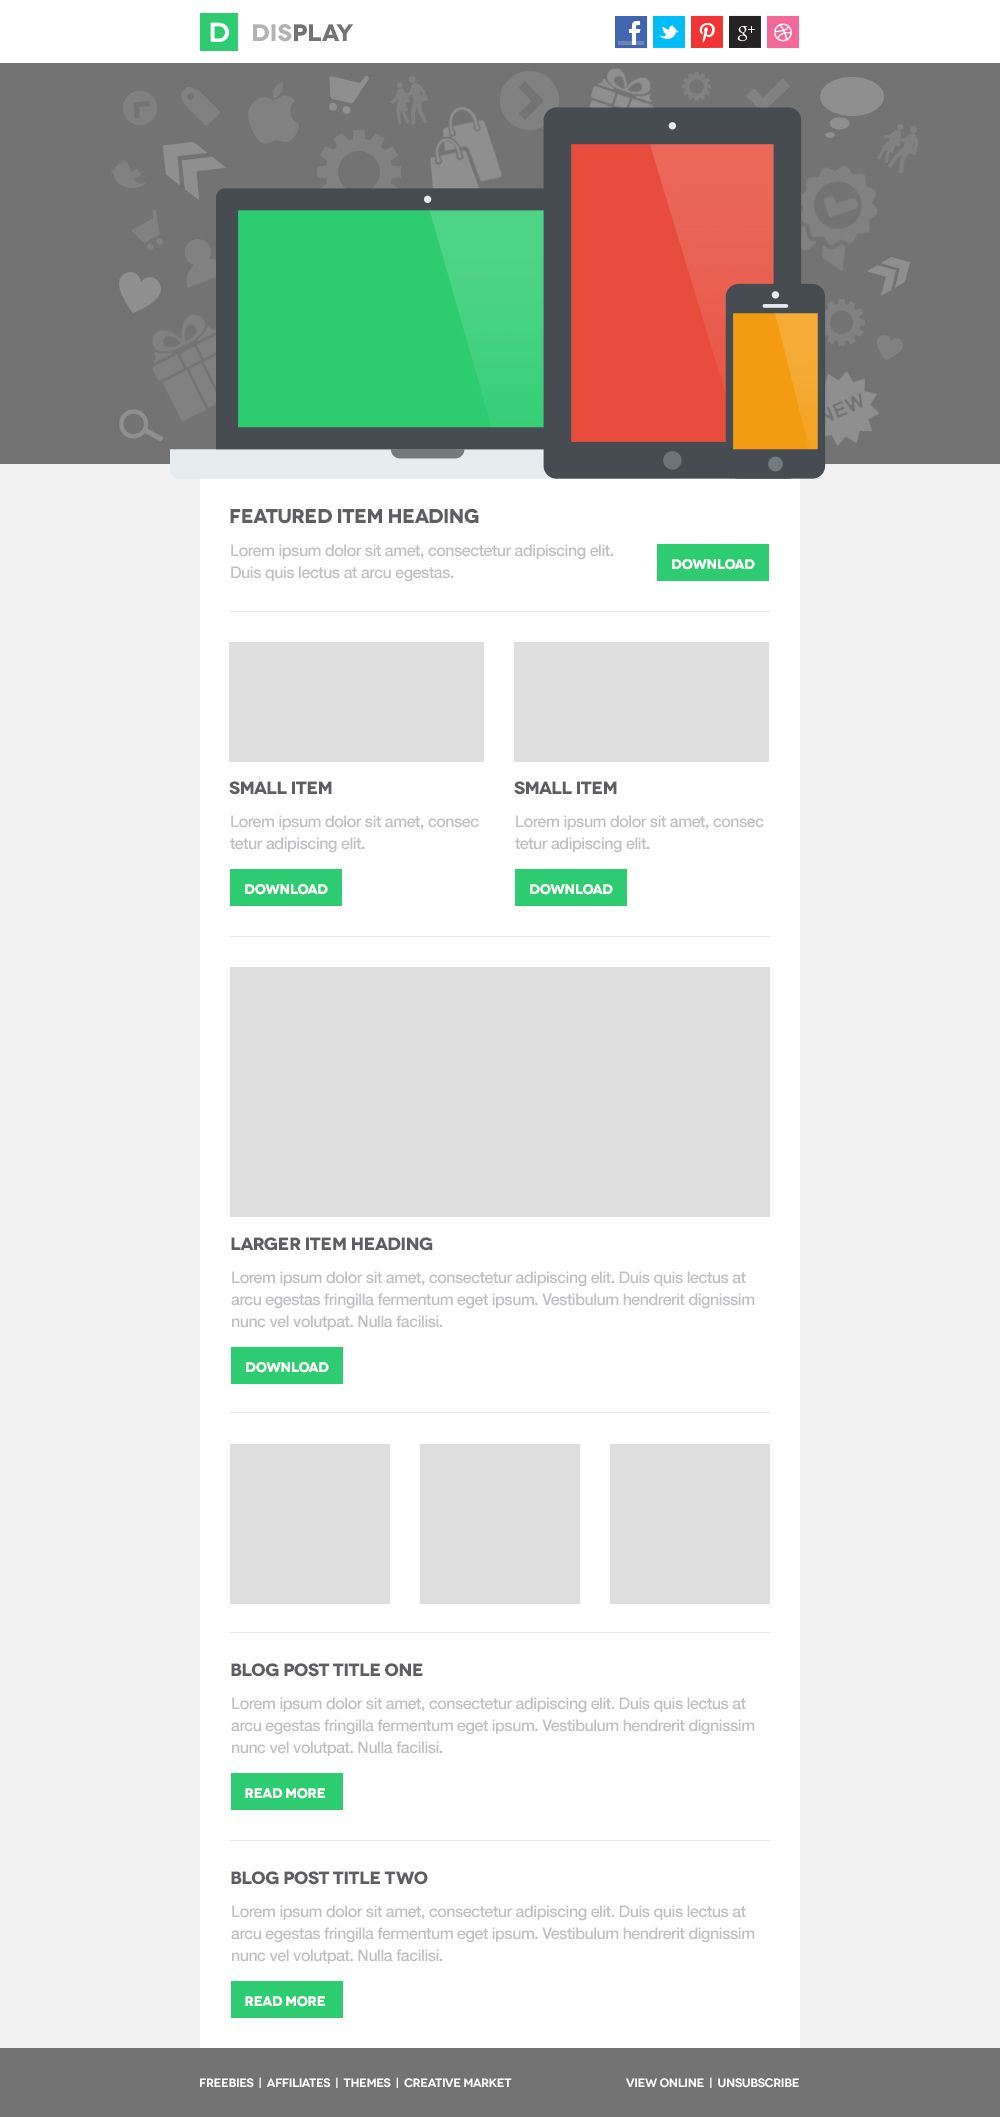 Display Email PSD Template Version 1 | Web Design / UI / UX ...